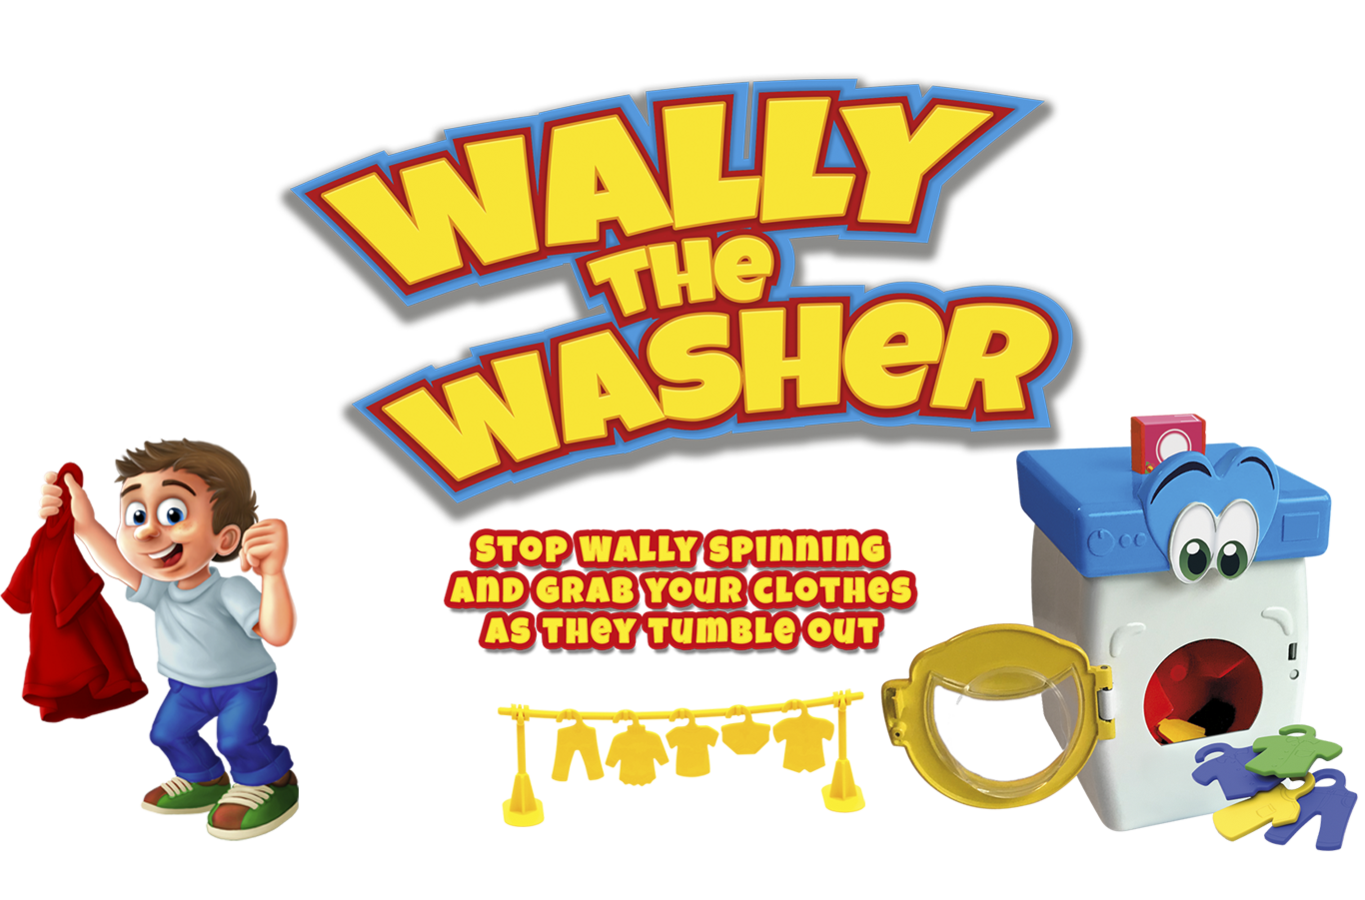 Wally the Washer